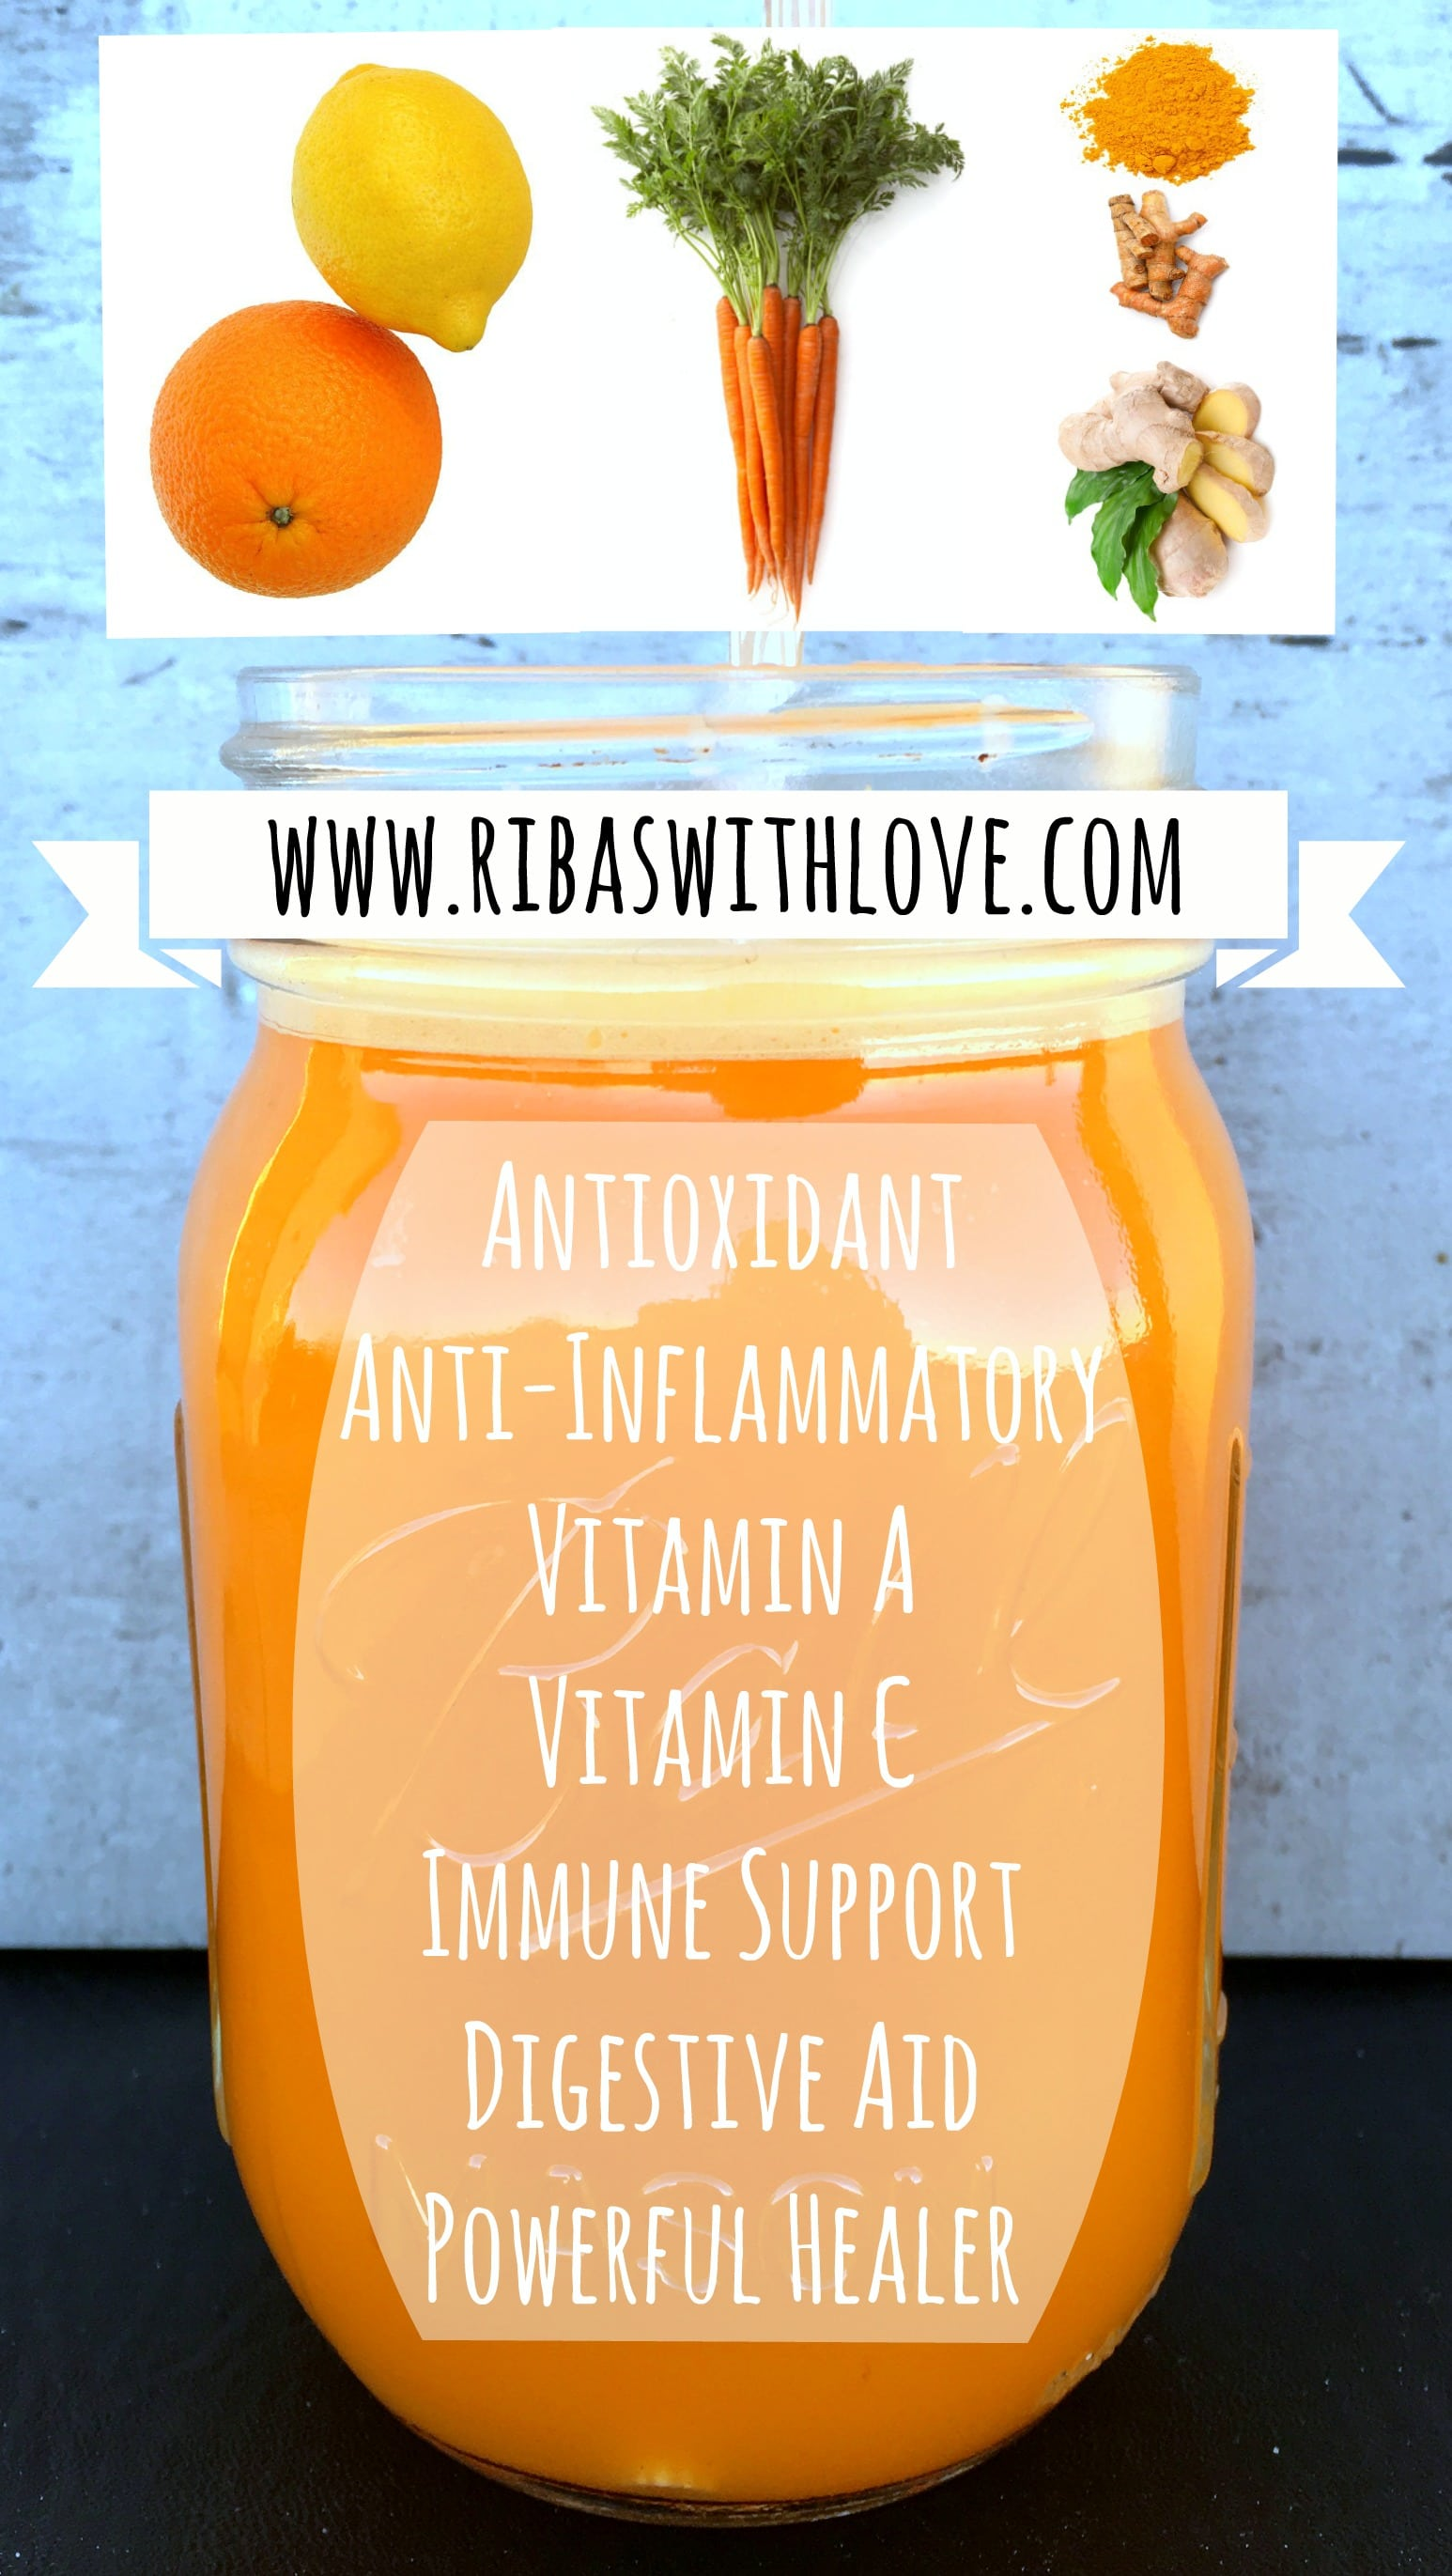 Feeling a little under the weather? This refreshing juice can give your immune system a boost and help you fight diseases and inflammation.